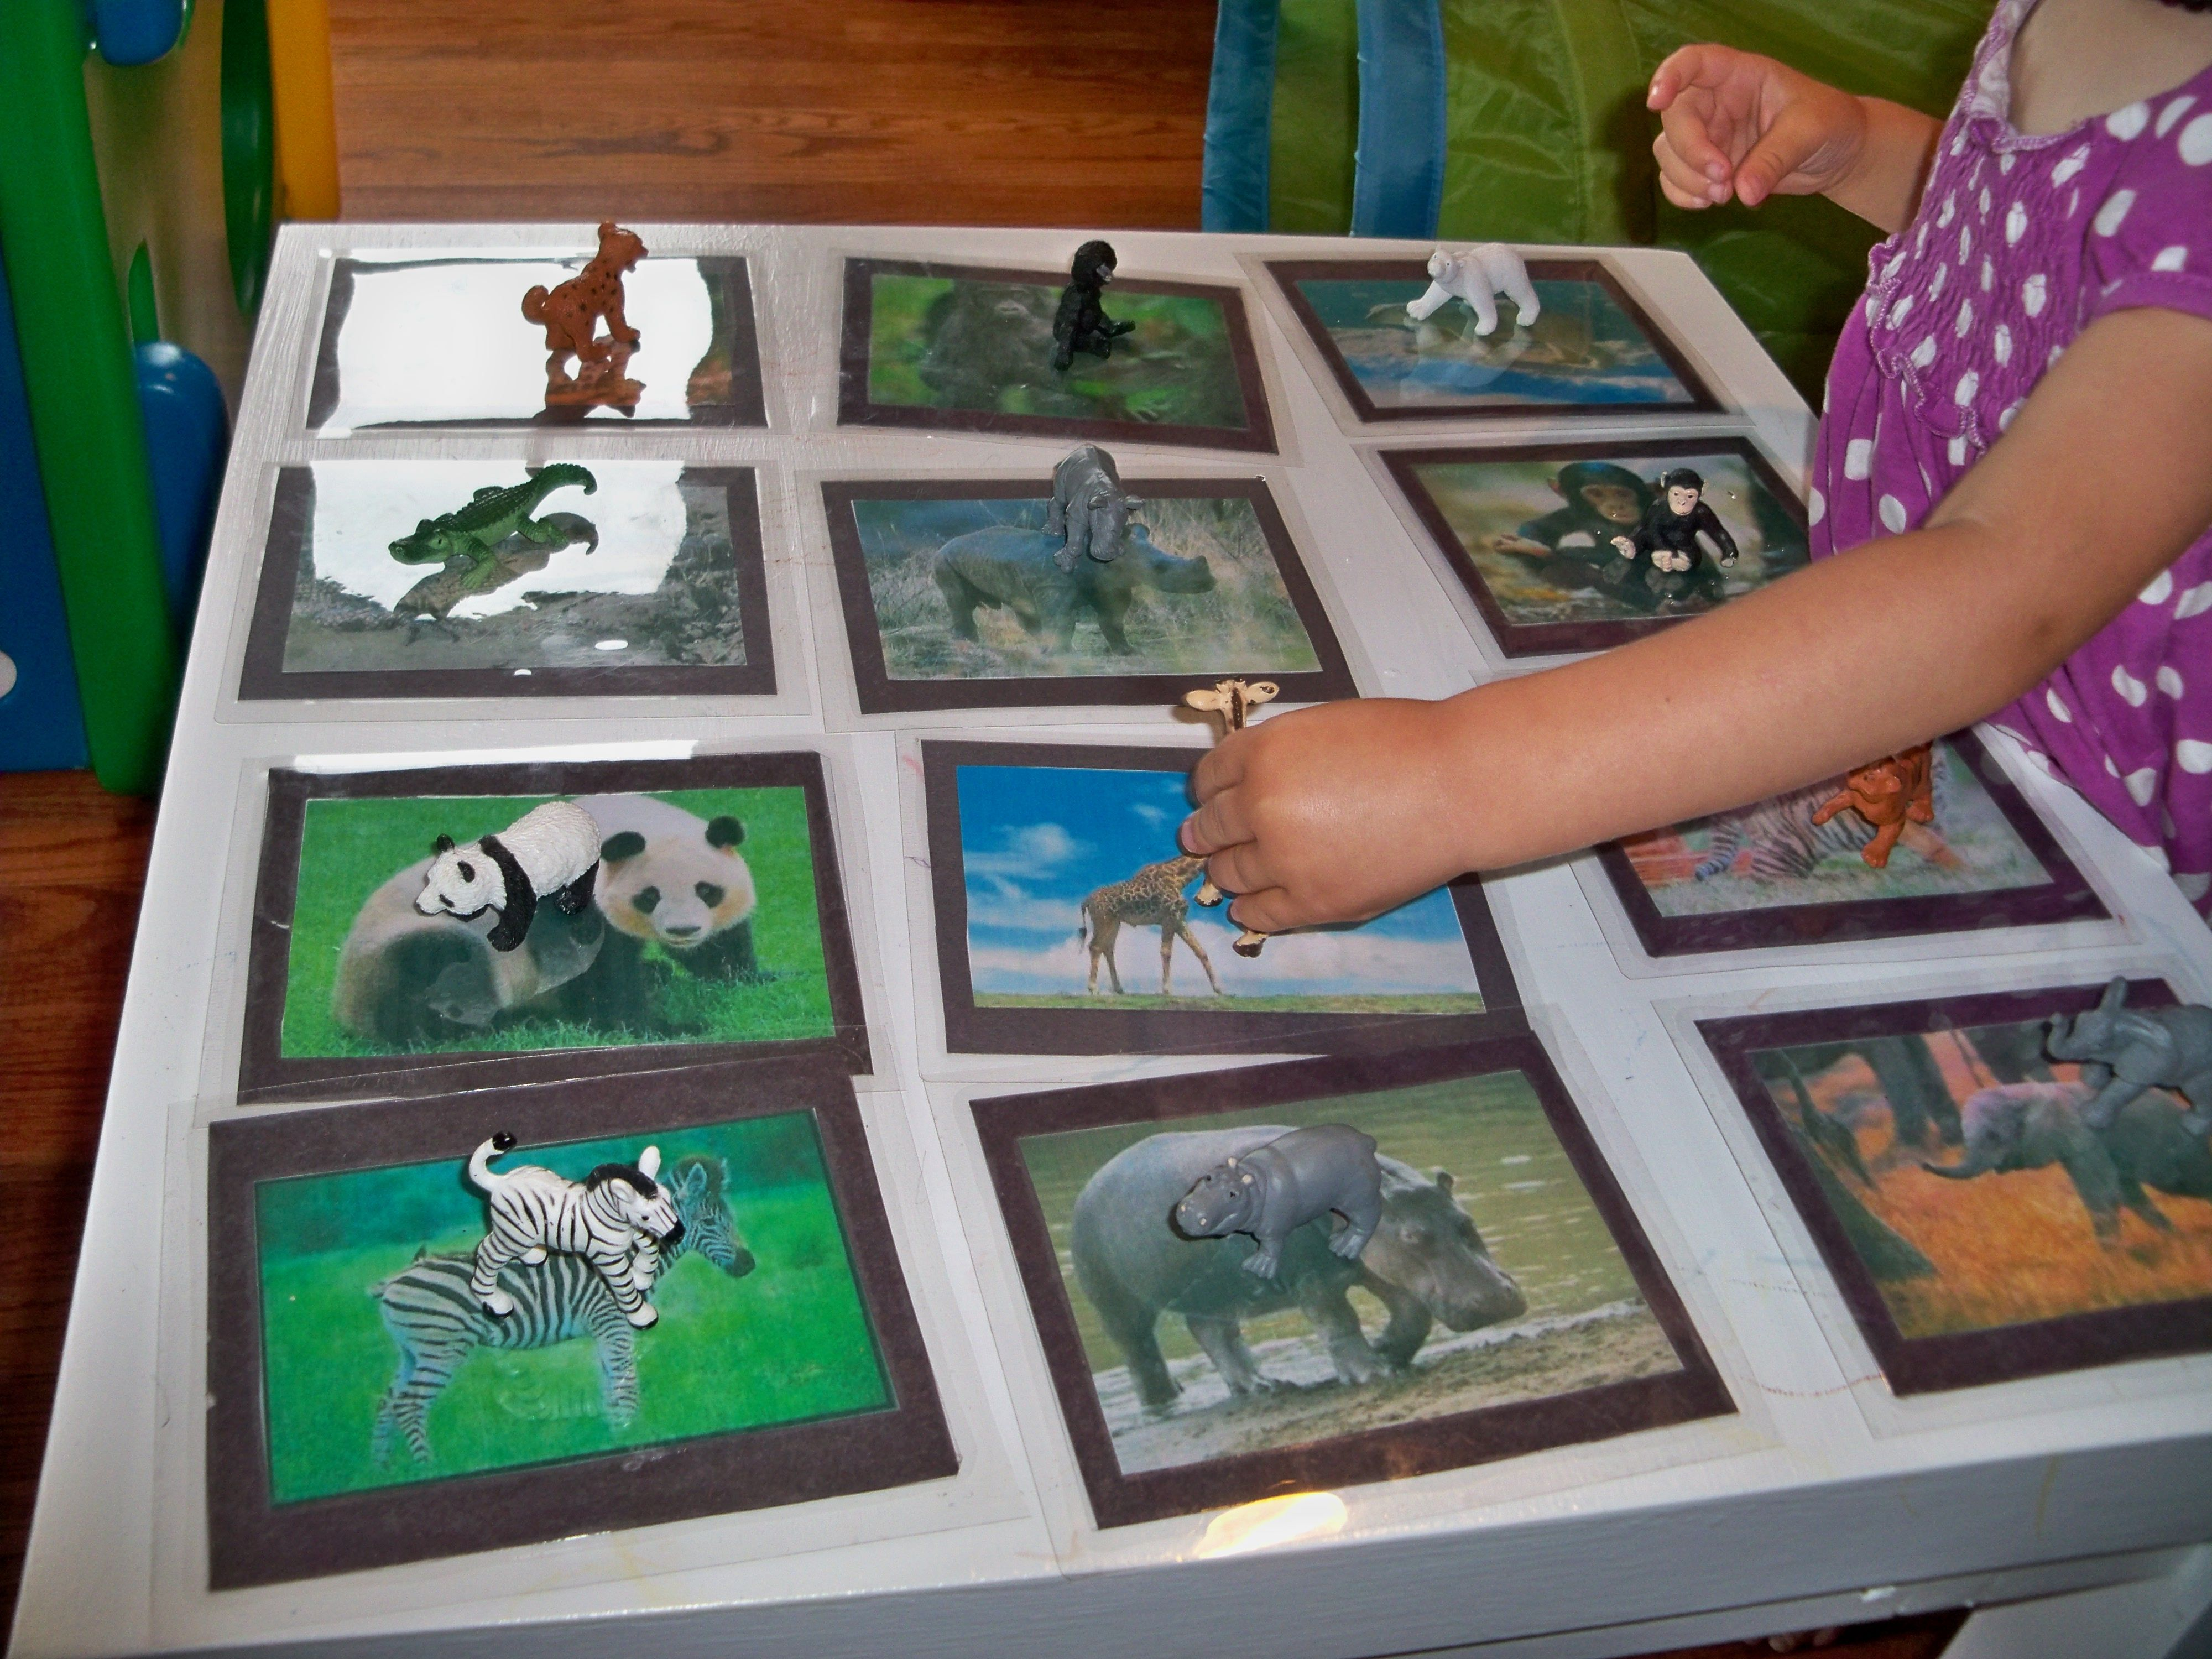 Kids Can Match One Plastic Animal To Each Corresponding